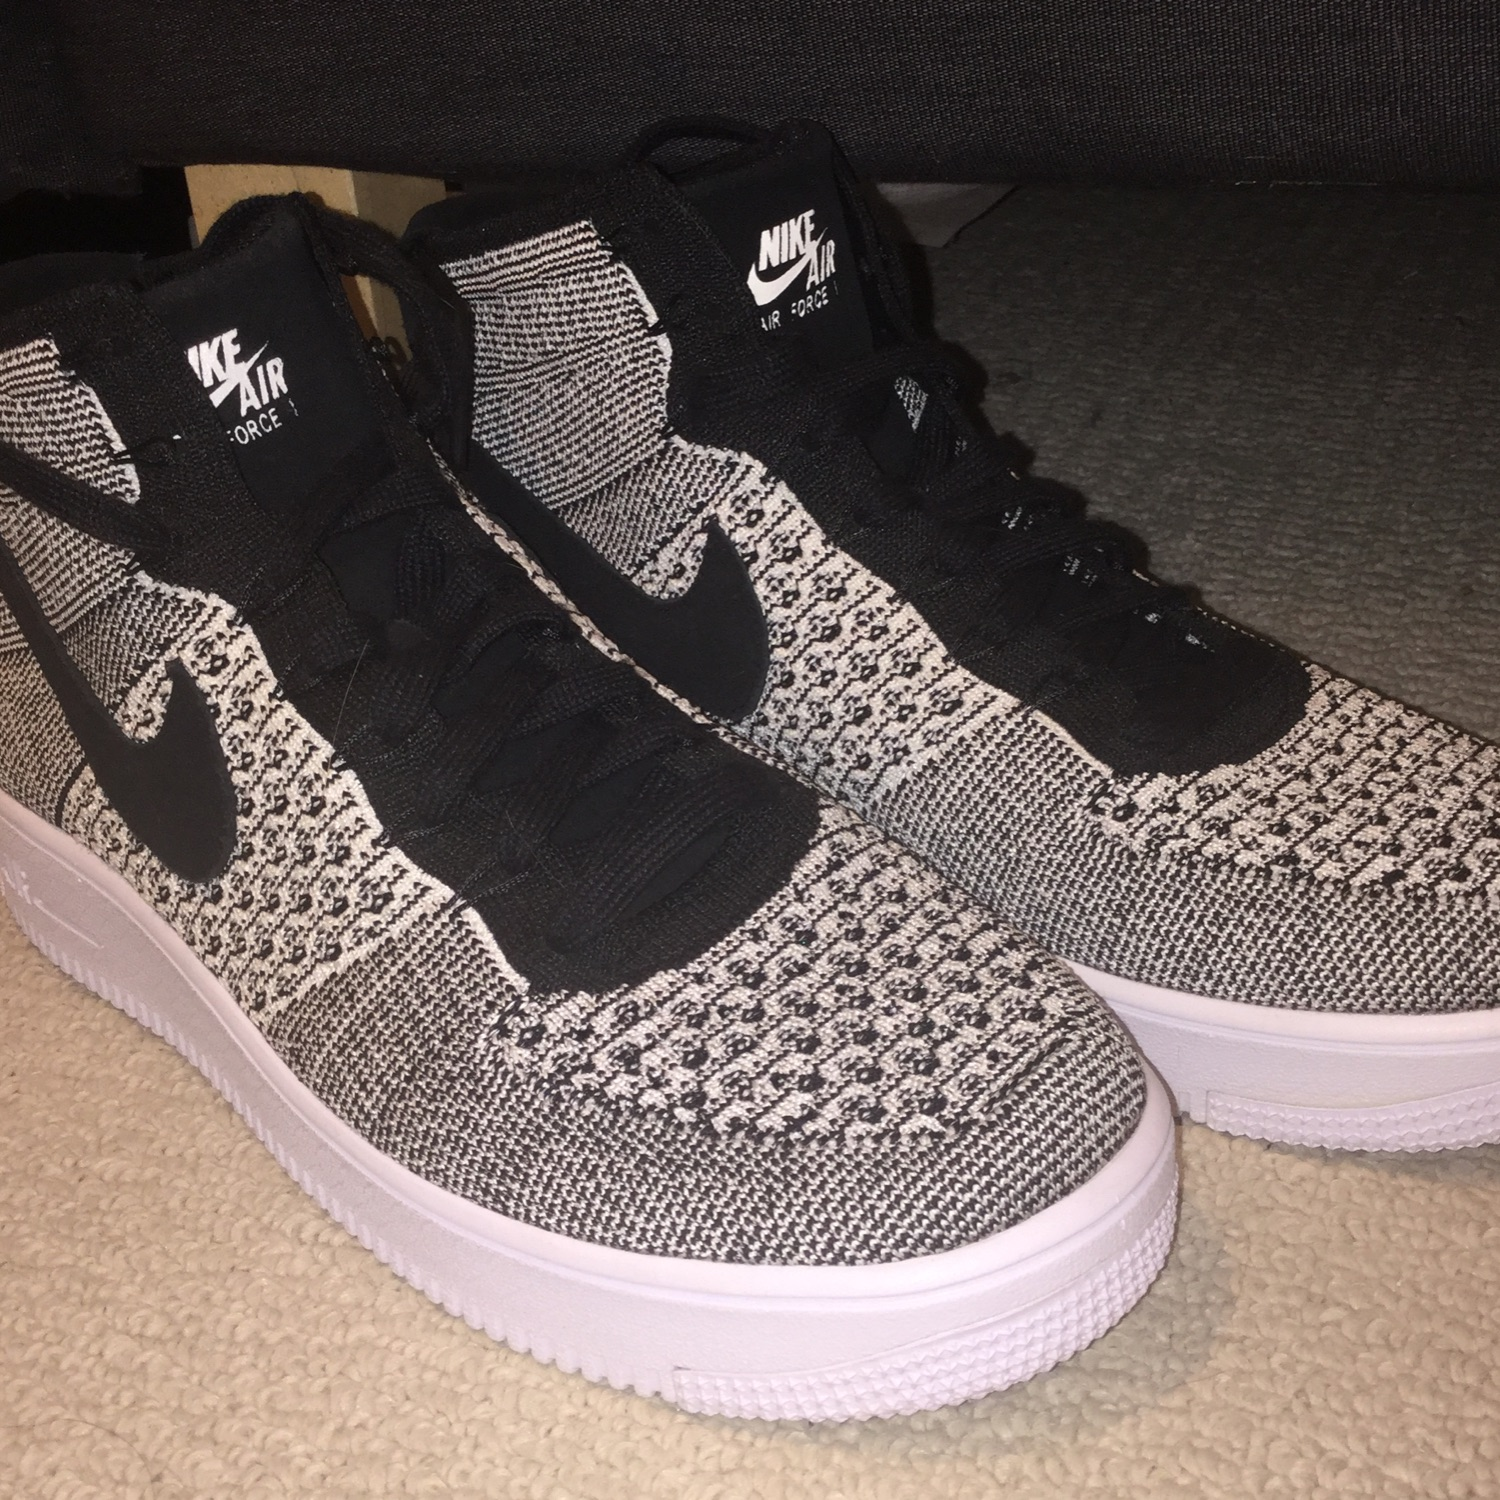 Nike Air Force 1 Flyknit High (Size 10)